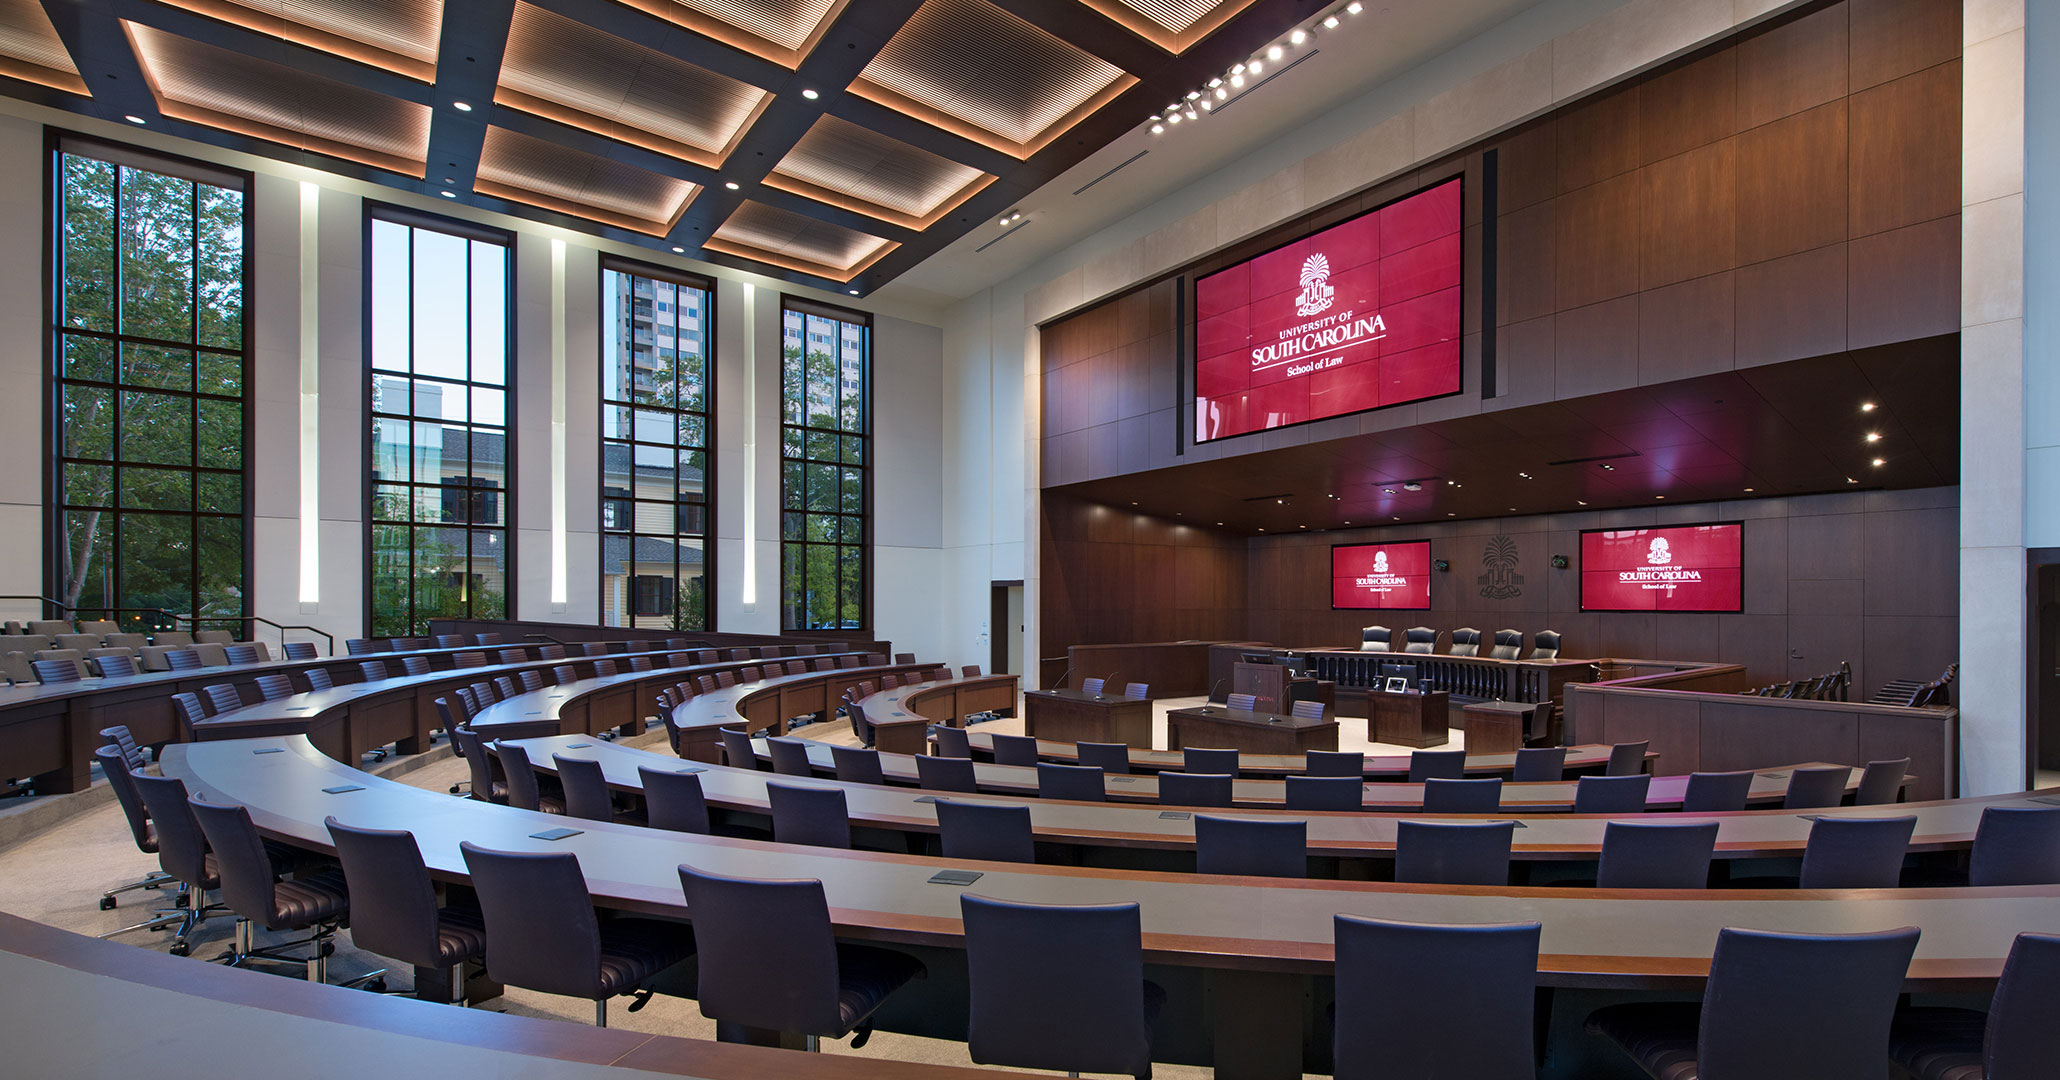 The University of South Carolina worked with Boudreaux architects to design classrooms for the new Law School.